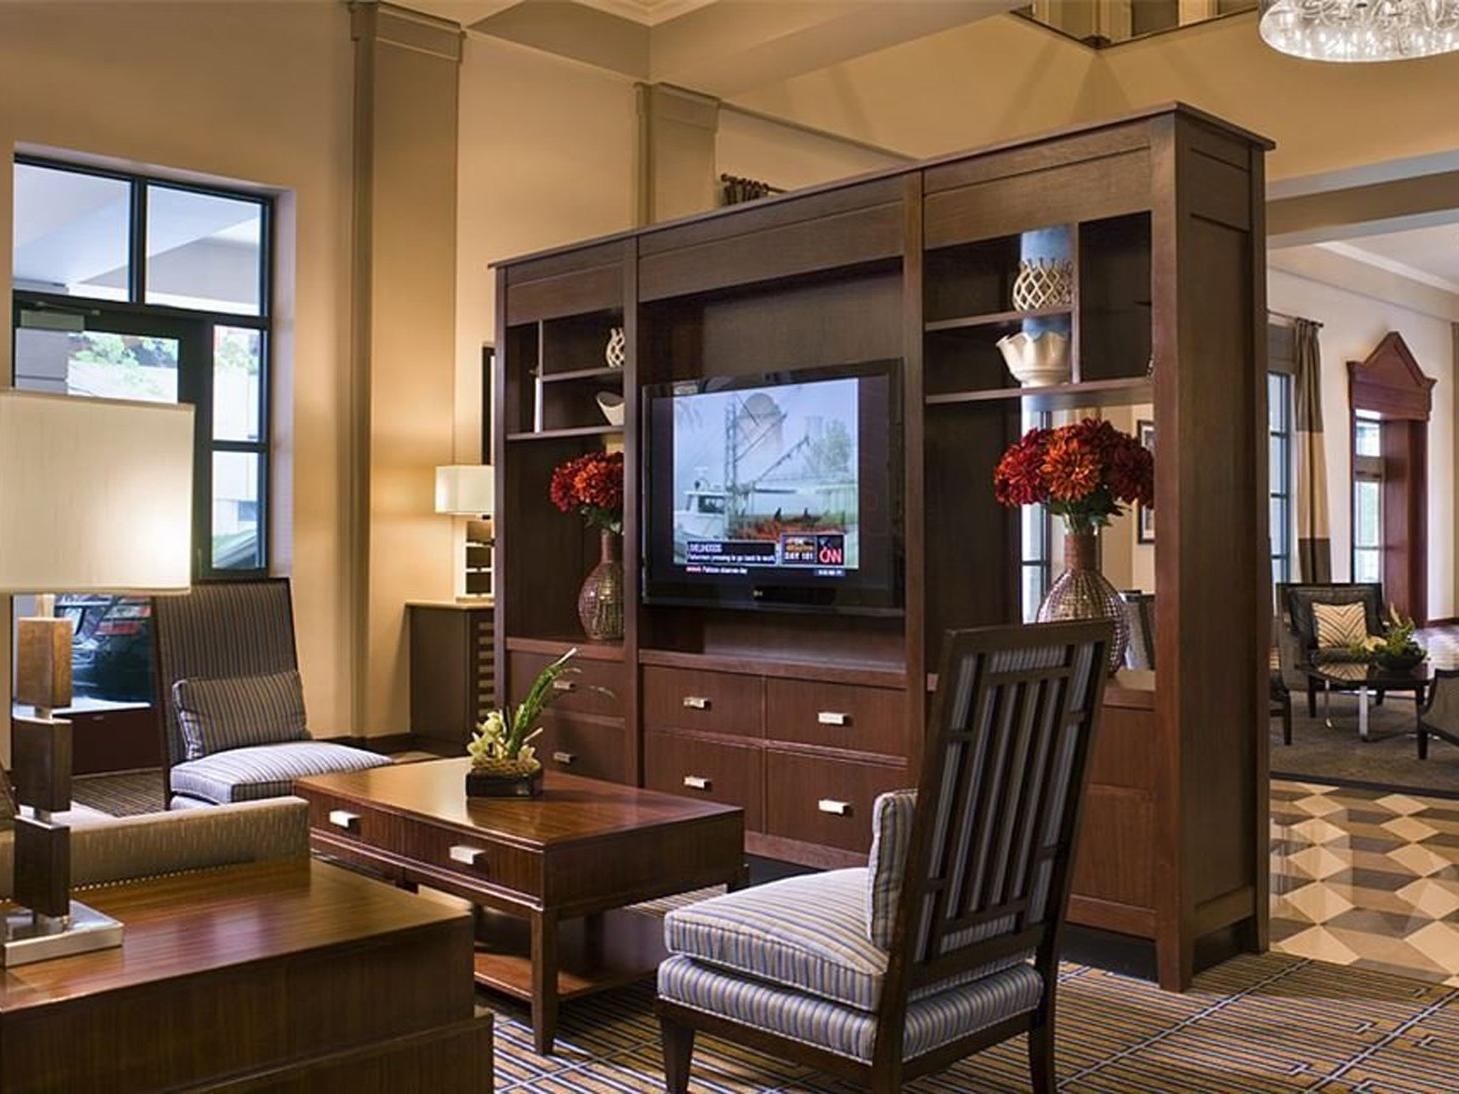 Seating Area with Large HDTV in Lobby